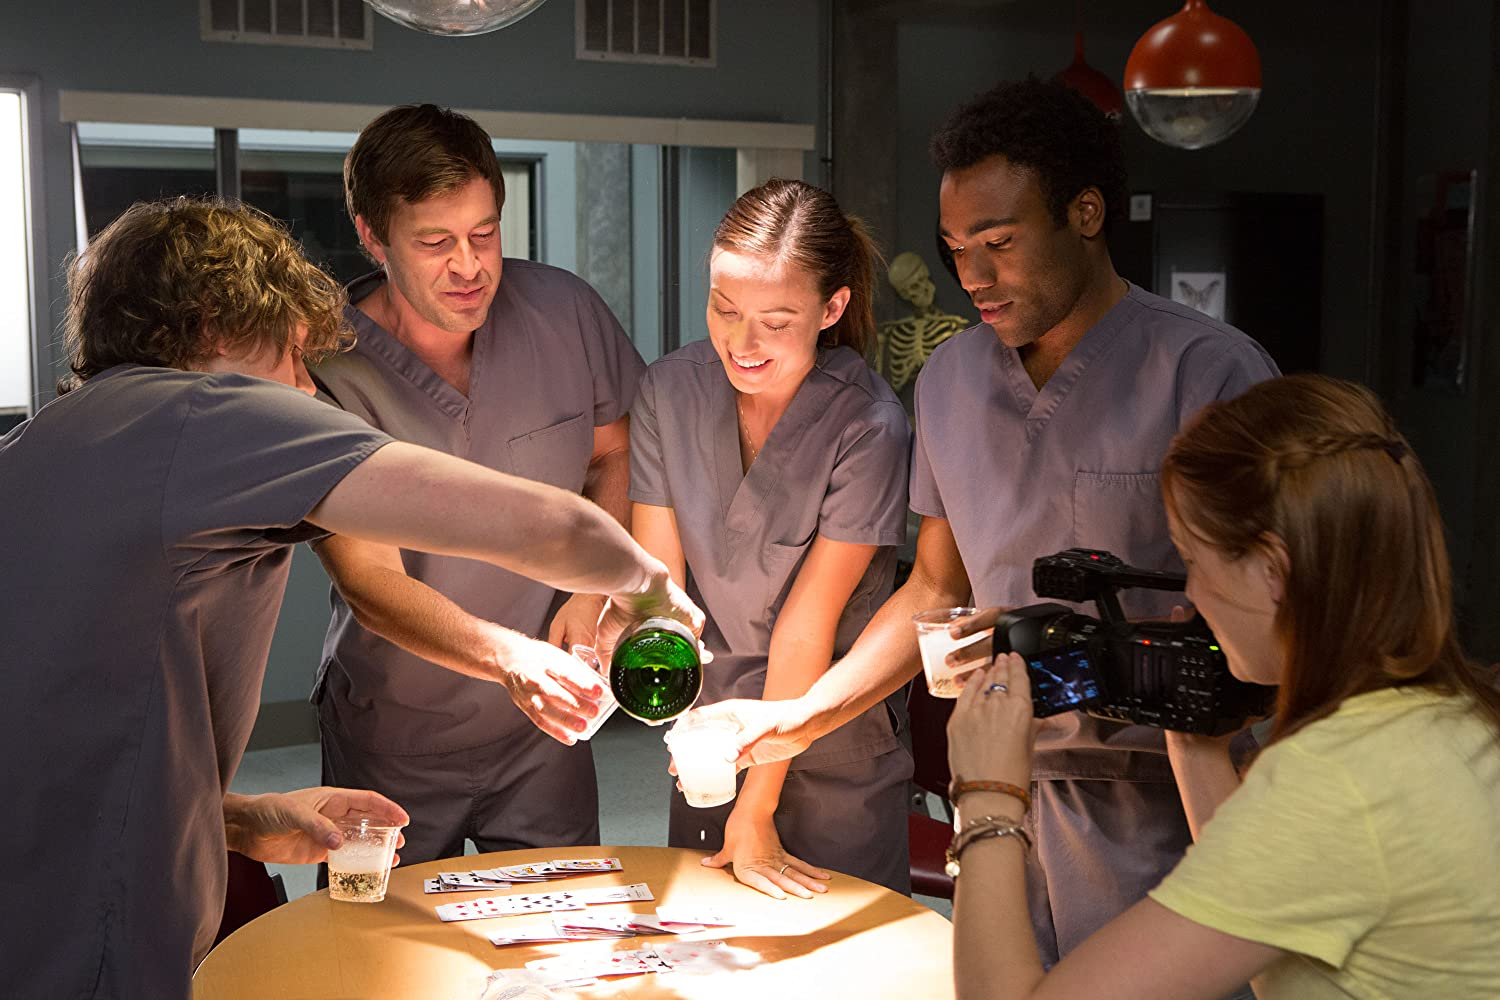 Sarah Bolger, Mark Duplass, Olivia Wilde, Evan Peters, and Donald Glover in The Lazarus Effect (2015)